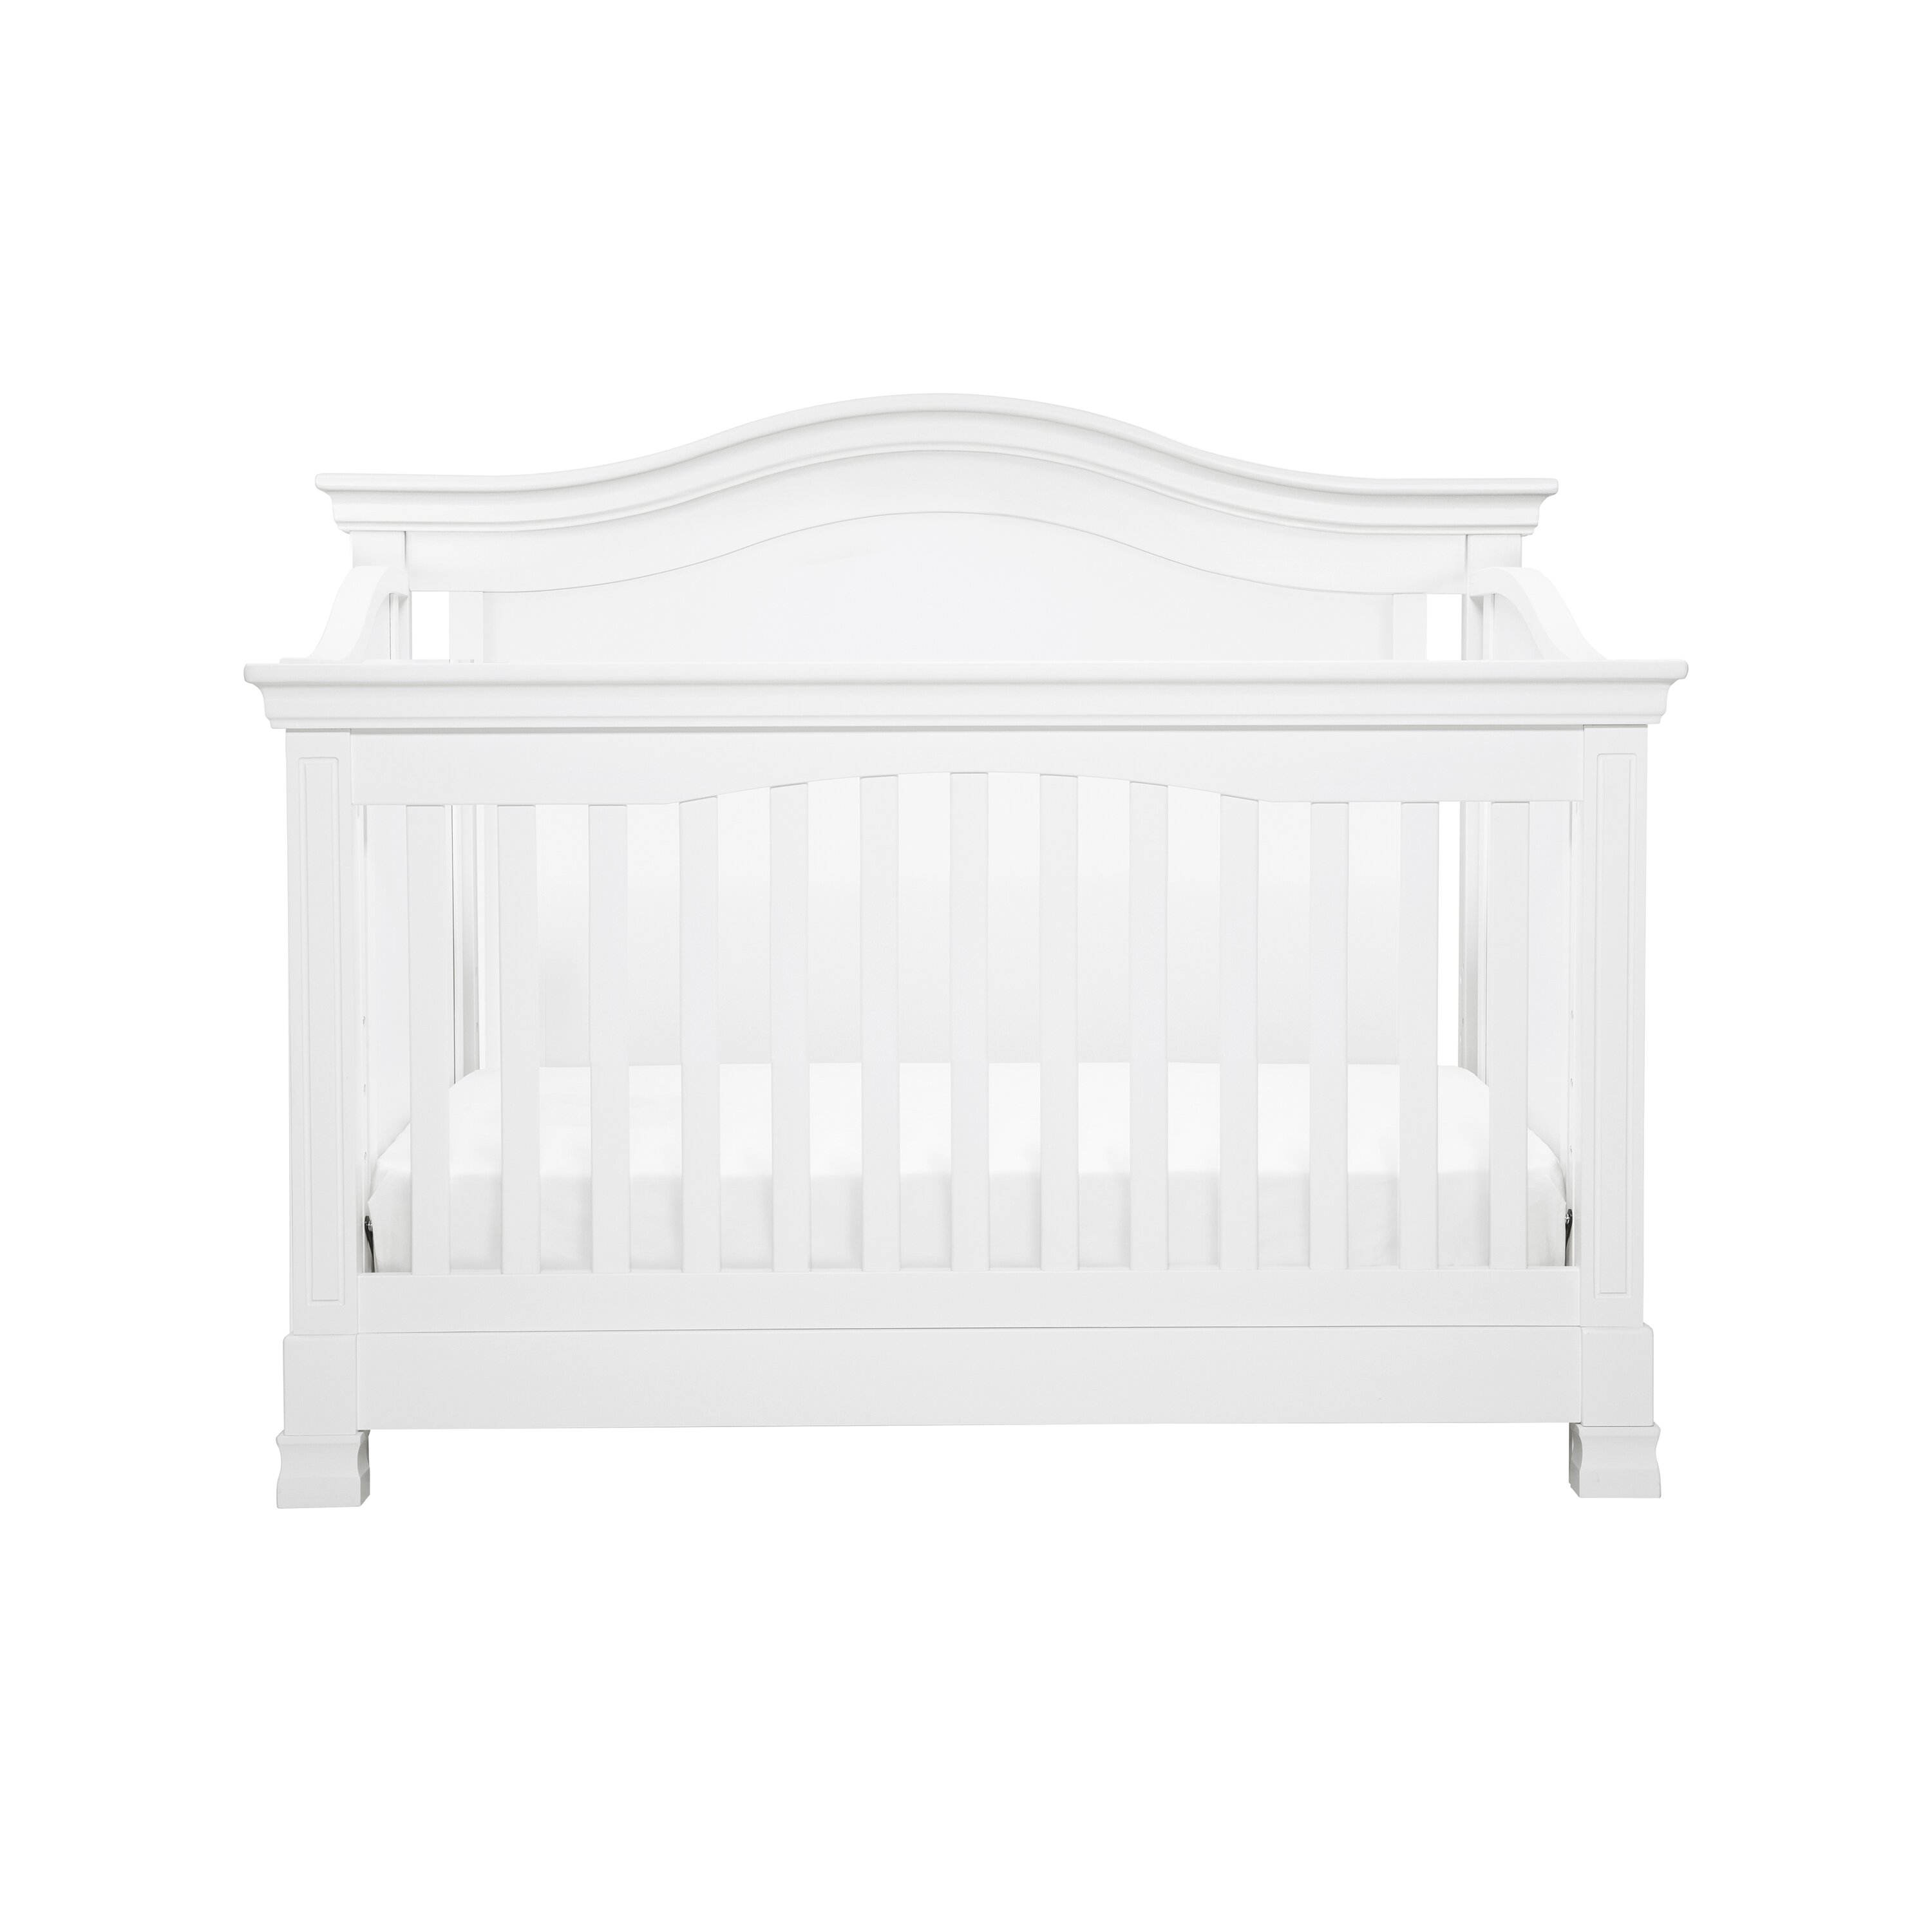 Crib for sale in fort lauderdale fl - Million Dollar Baby Classic Louis 4 In 1 Convertible Crib